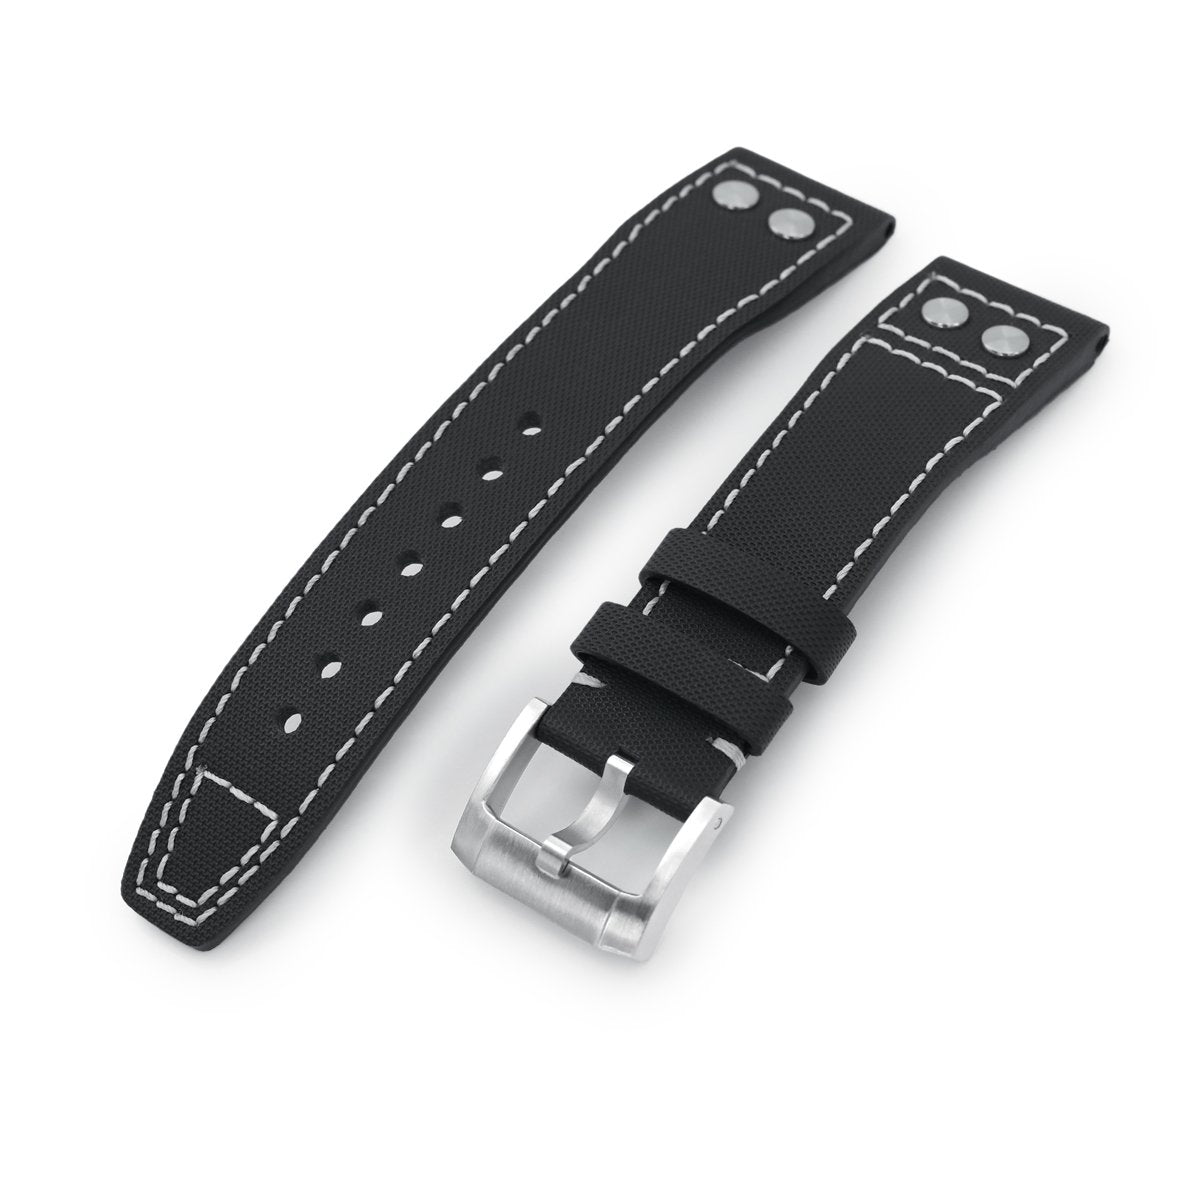 20mm to 23mm Pilot Black Woven Texture Rivet Lug Watch Strap Beige Stitching Brushed Strapcode Watch Bands